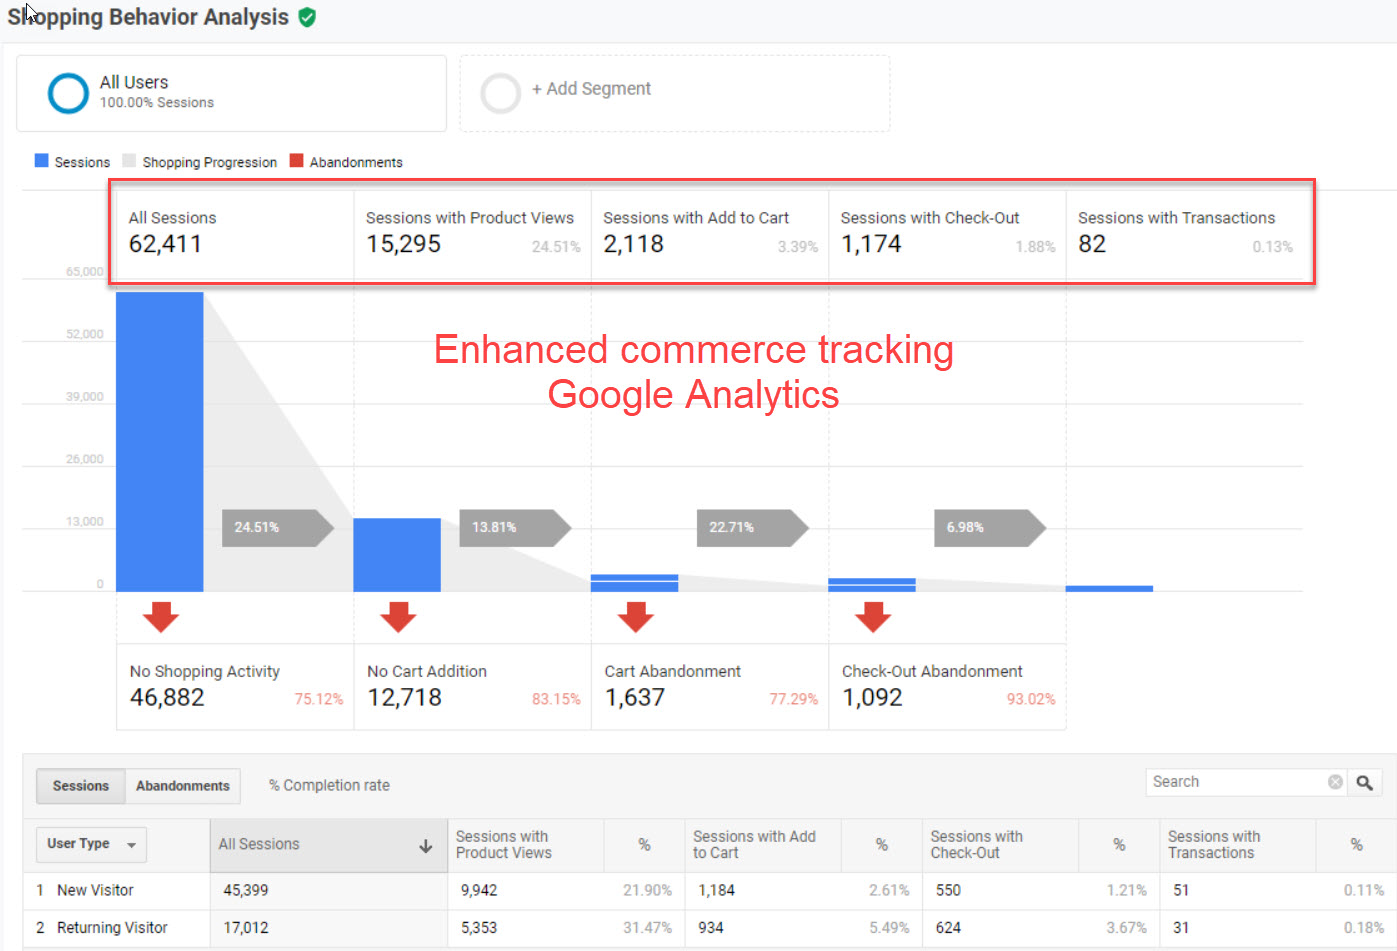 enahanced commerce tracking